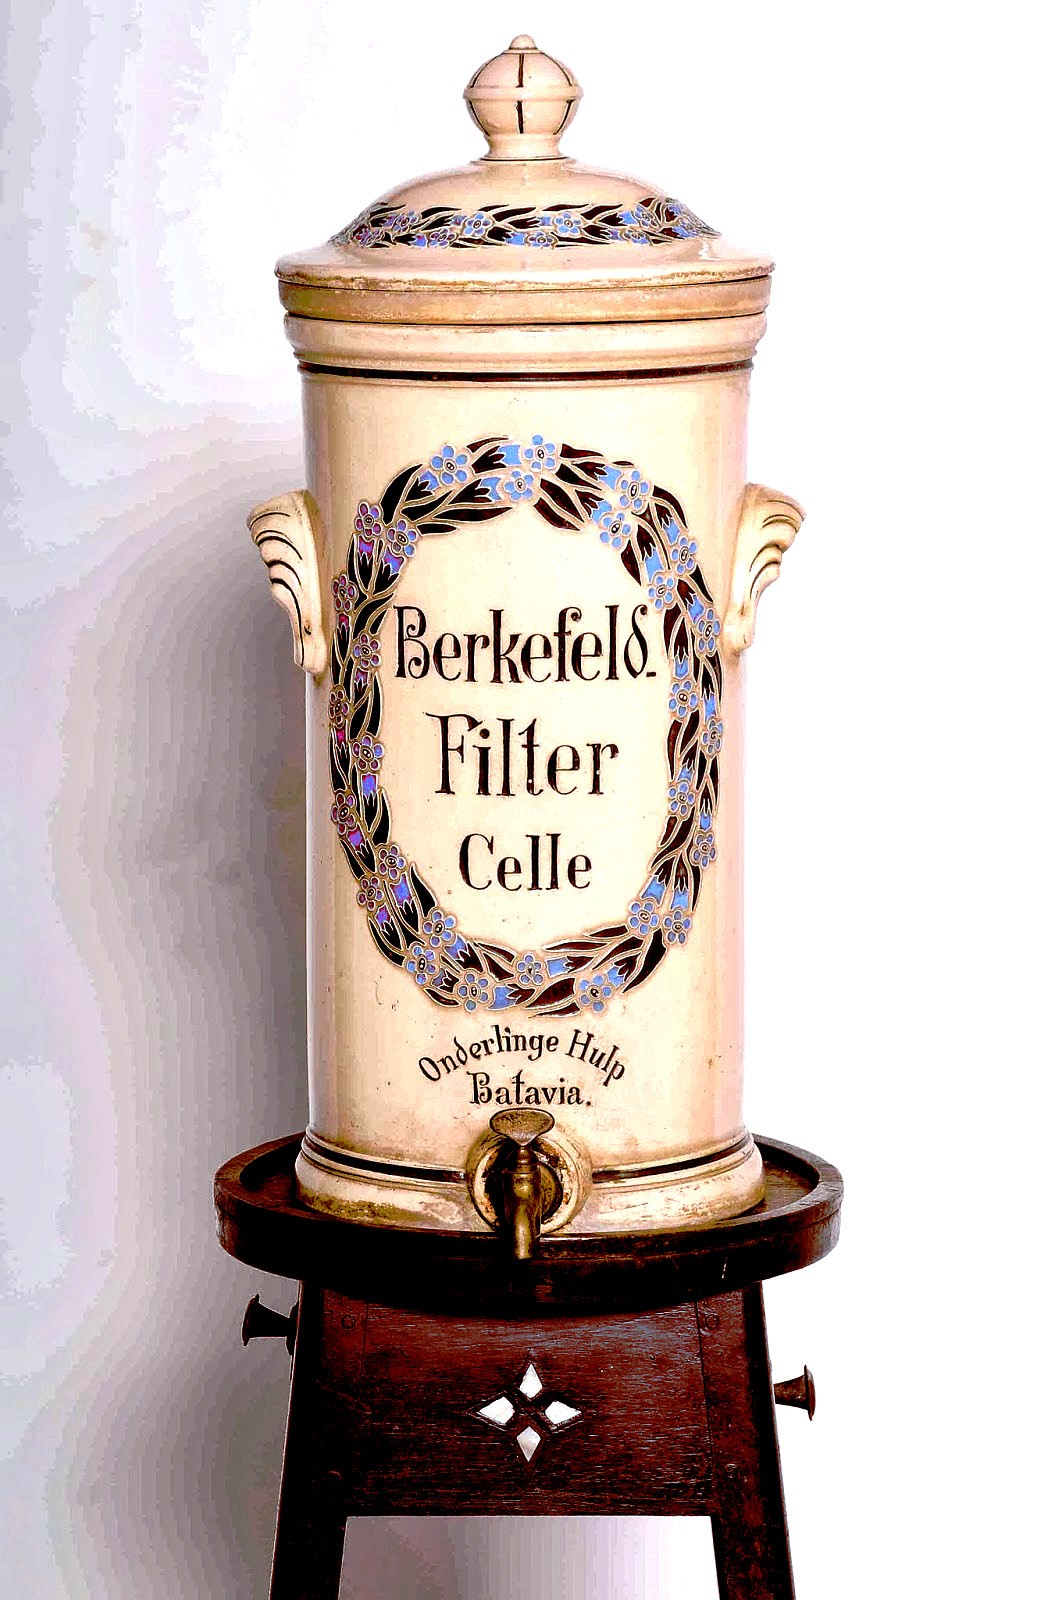 Berkefeld Filter Celle Batavia